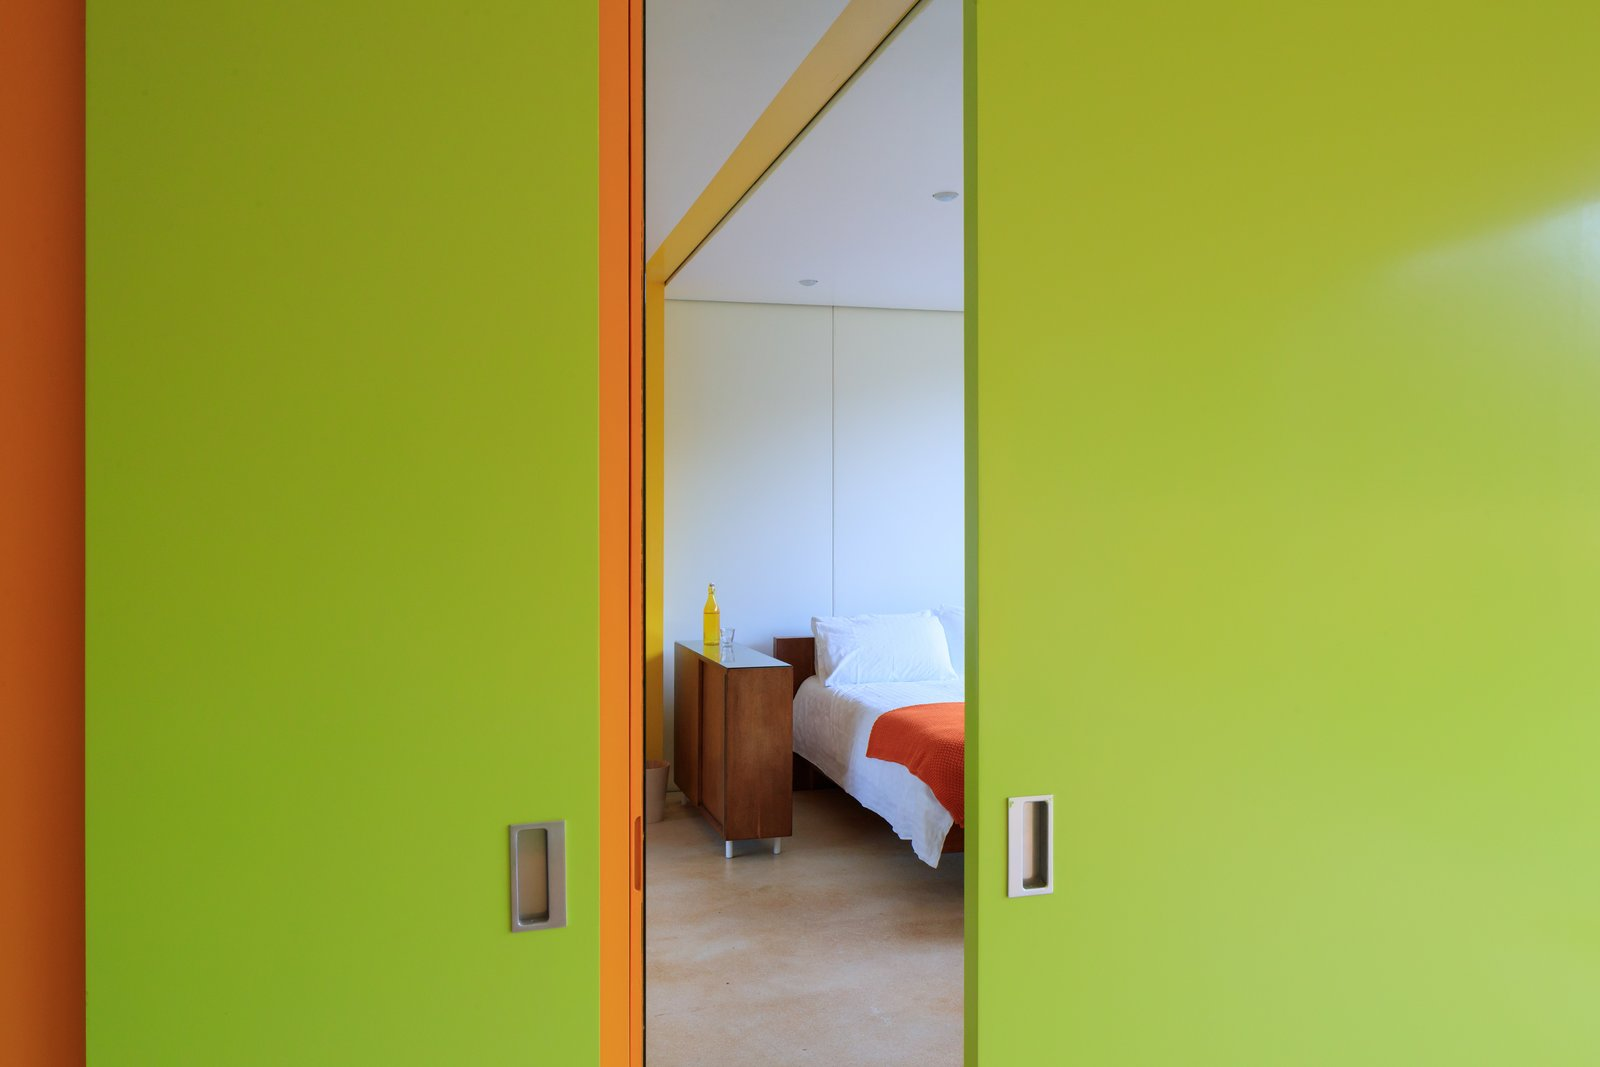 Tagged: Bedroom.  Photo 8 of 14 in Fully Renovated, Wimbledon House by Richard Rogers Hosts New Architecture Fellows in London